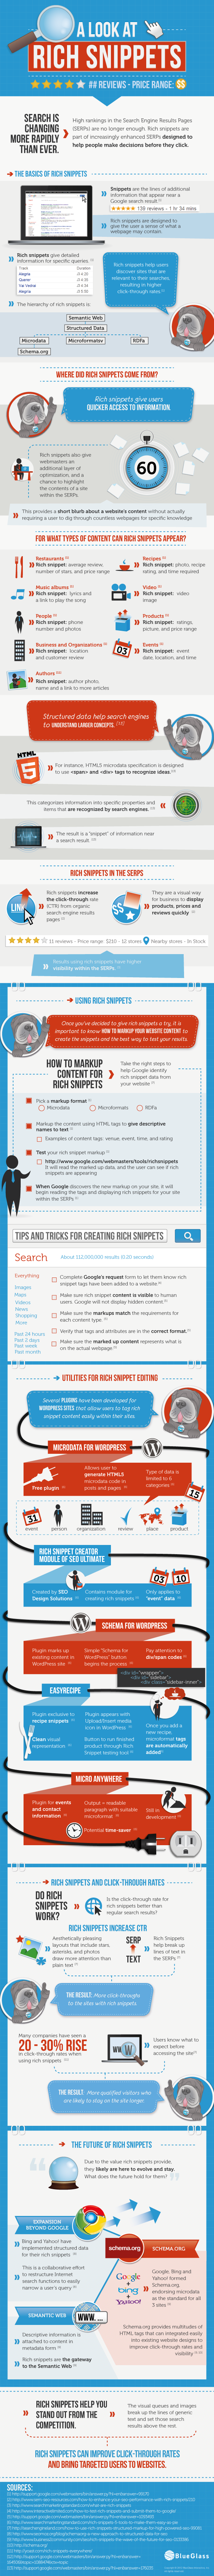 Infographie rich snippets